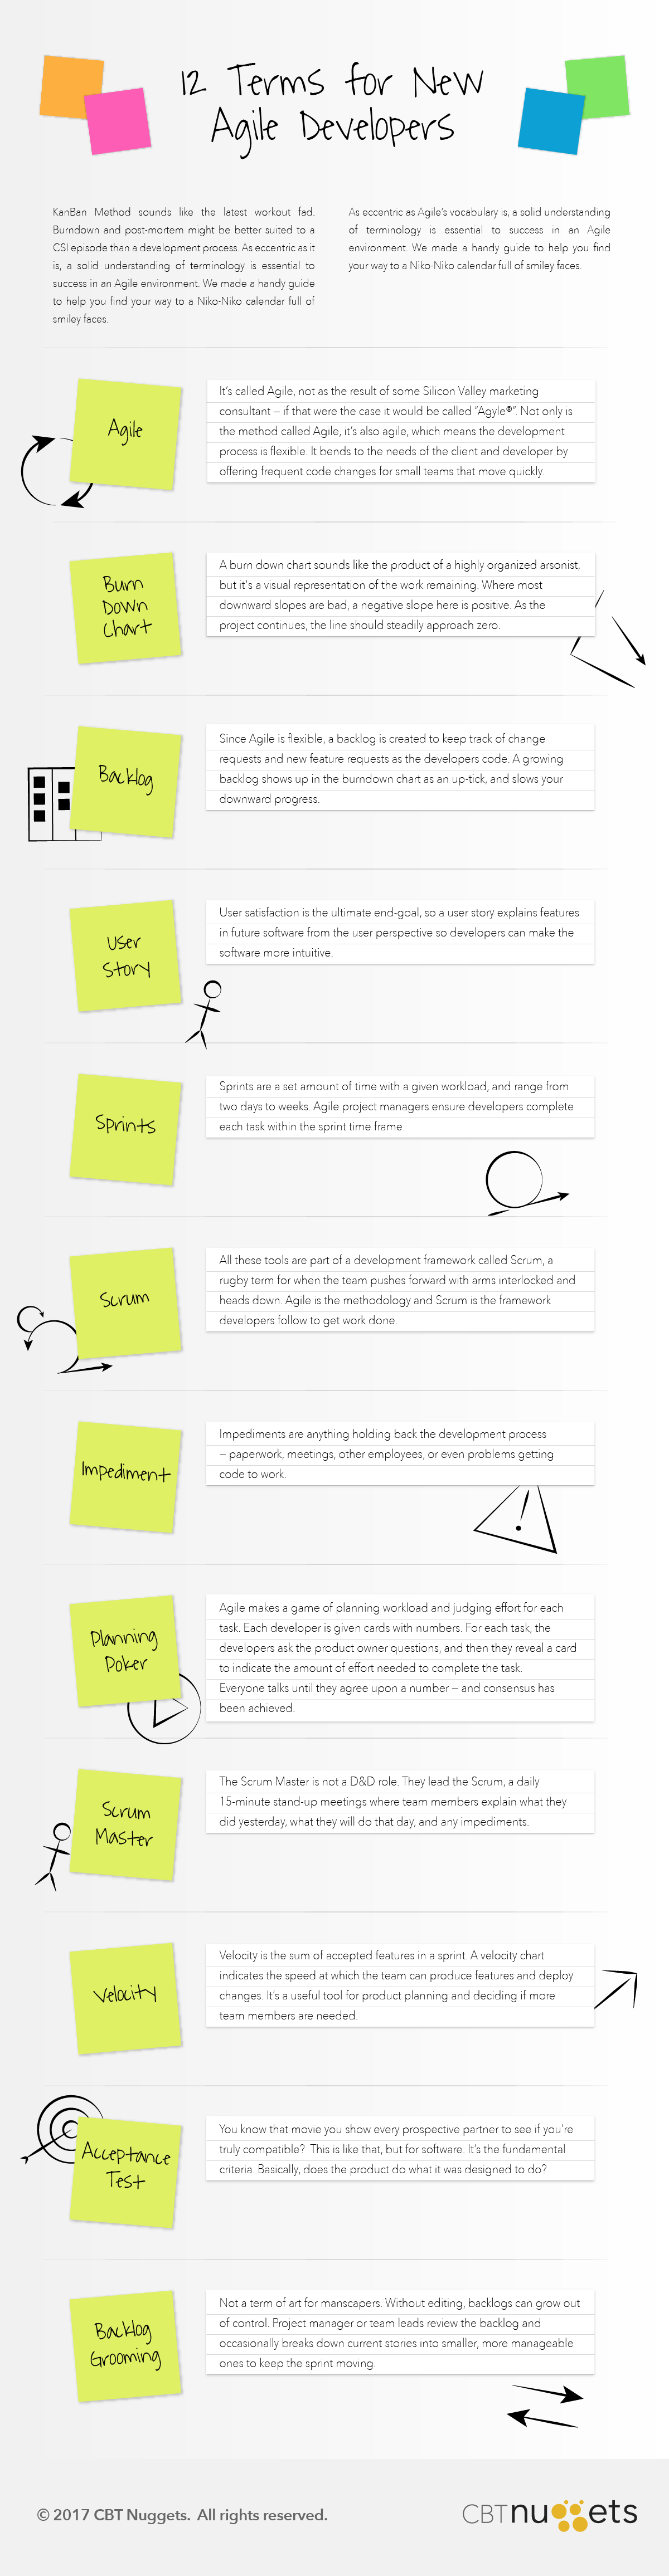 12 Terms for New Agile Developers